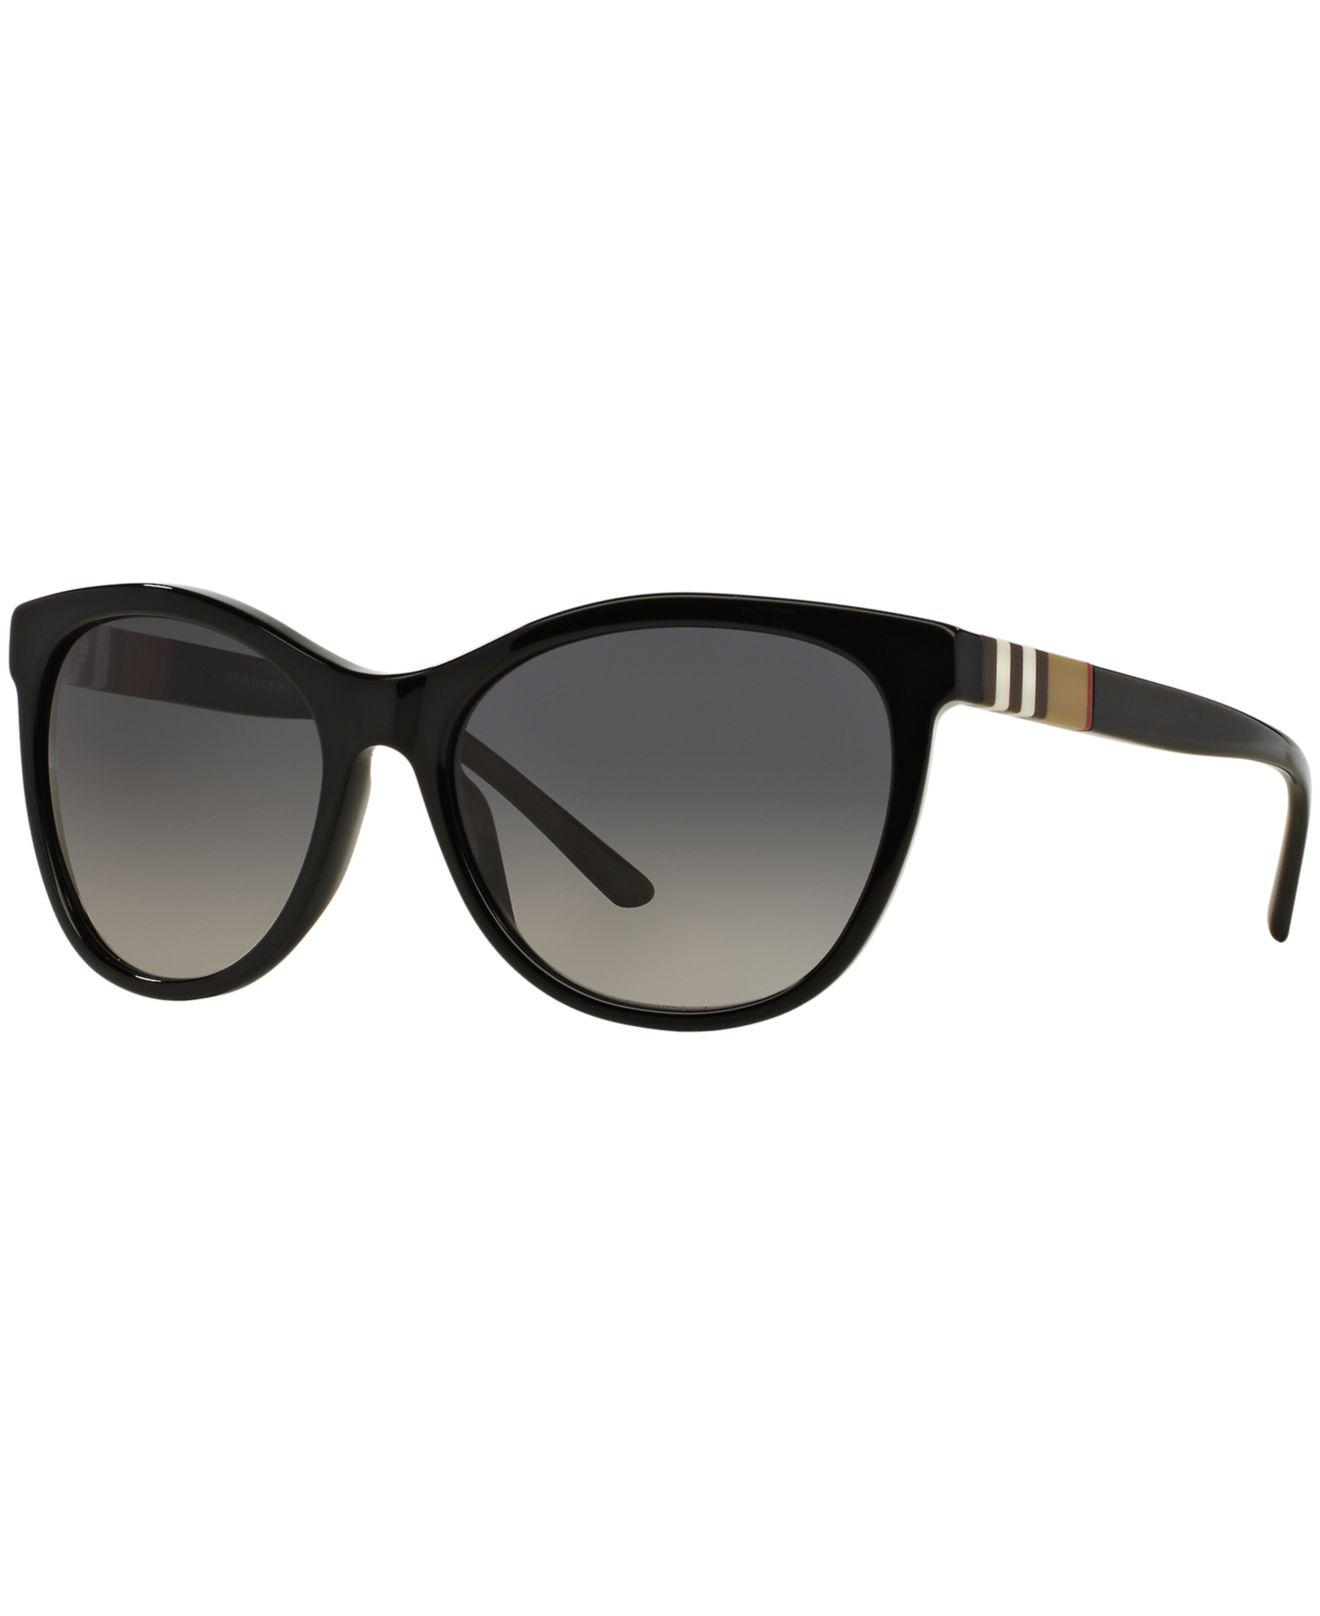 0f763dcd7a Burberry. Women s Black Sunglasses ...